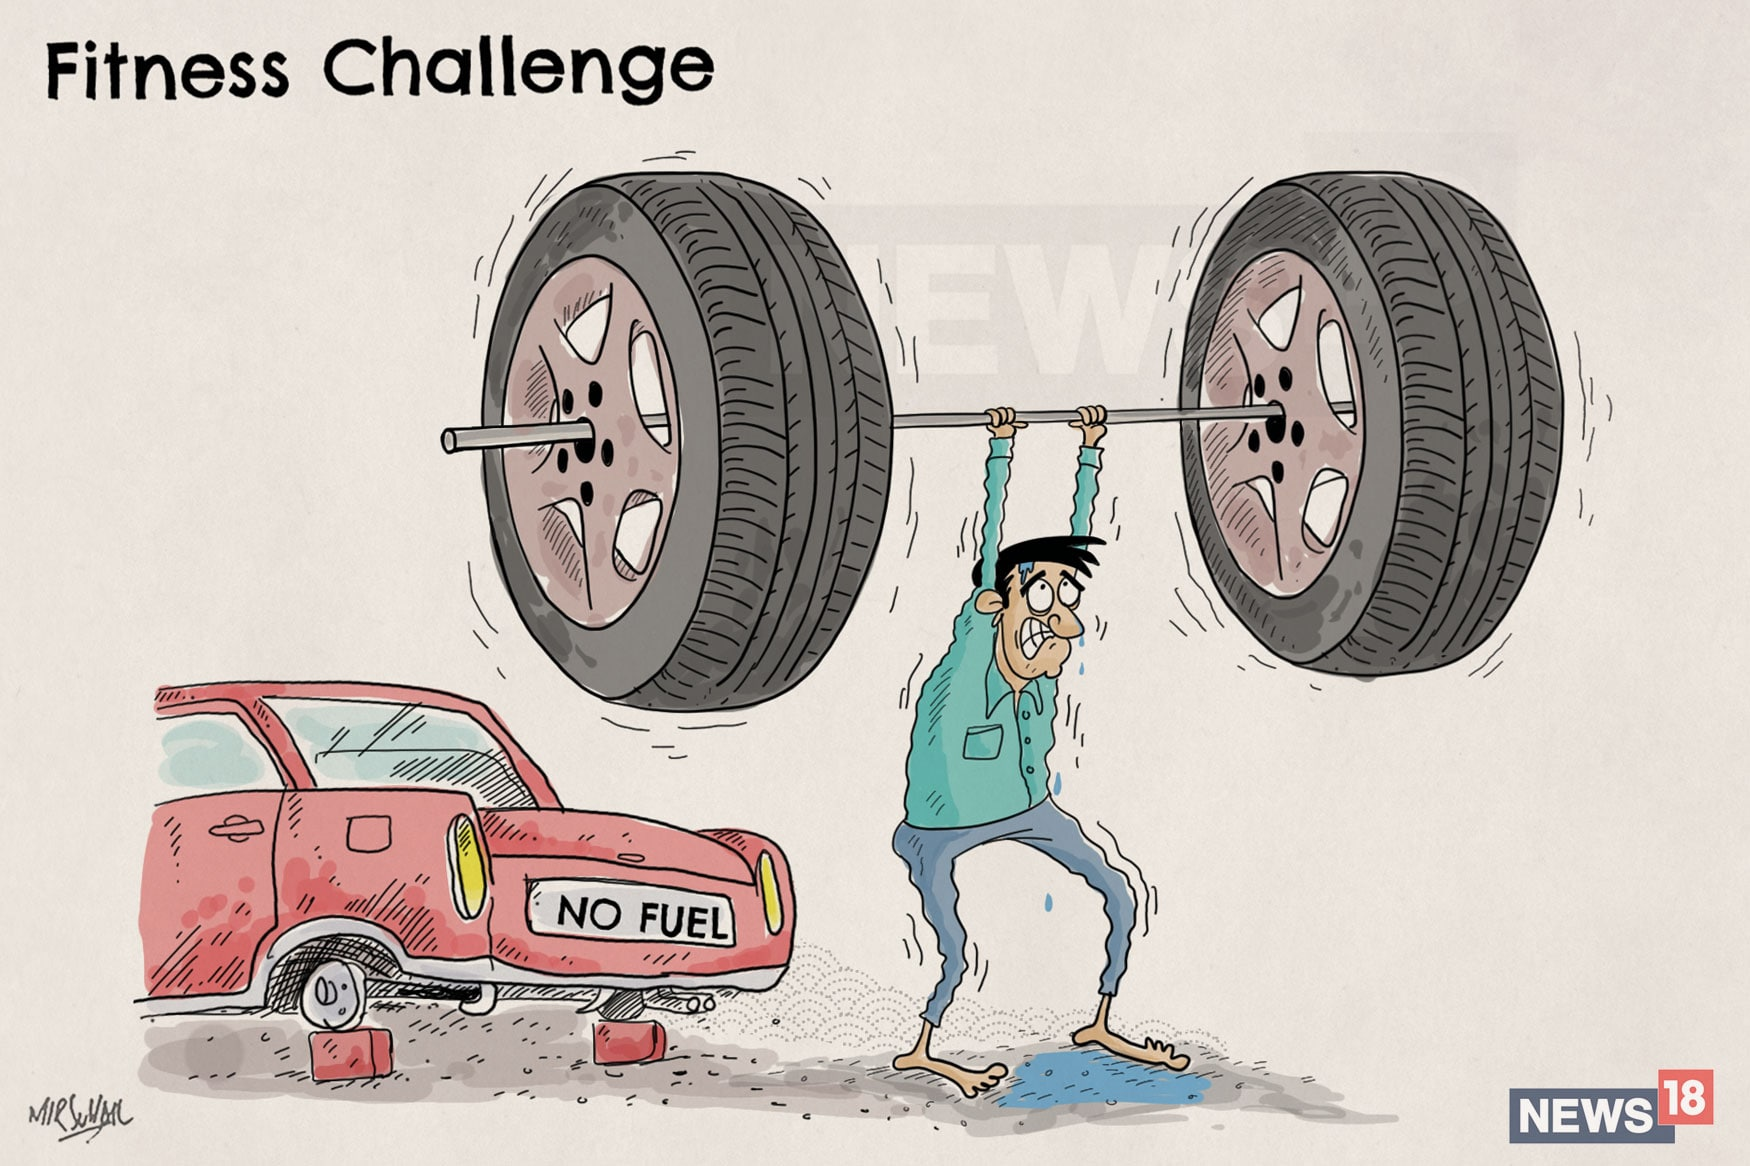 Fitness-Challenge-Cartoon